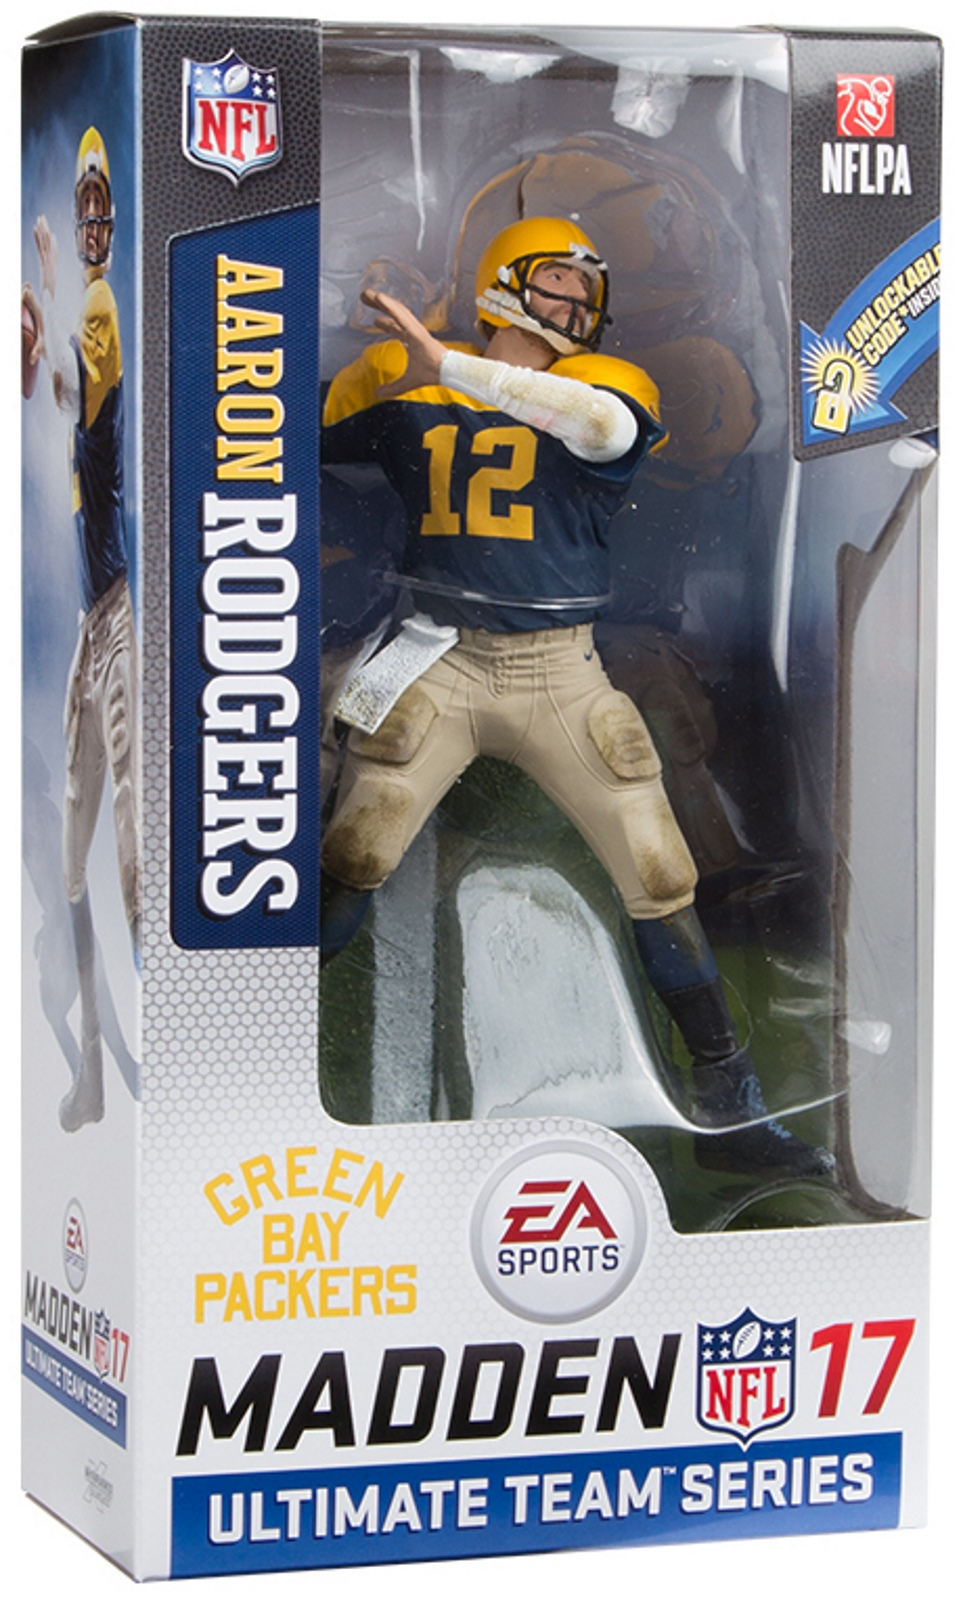 Aaron Rodgers NFL Ultimate Team Series 2 Madden 17 McFarlane figure Green Bay Packers